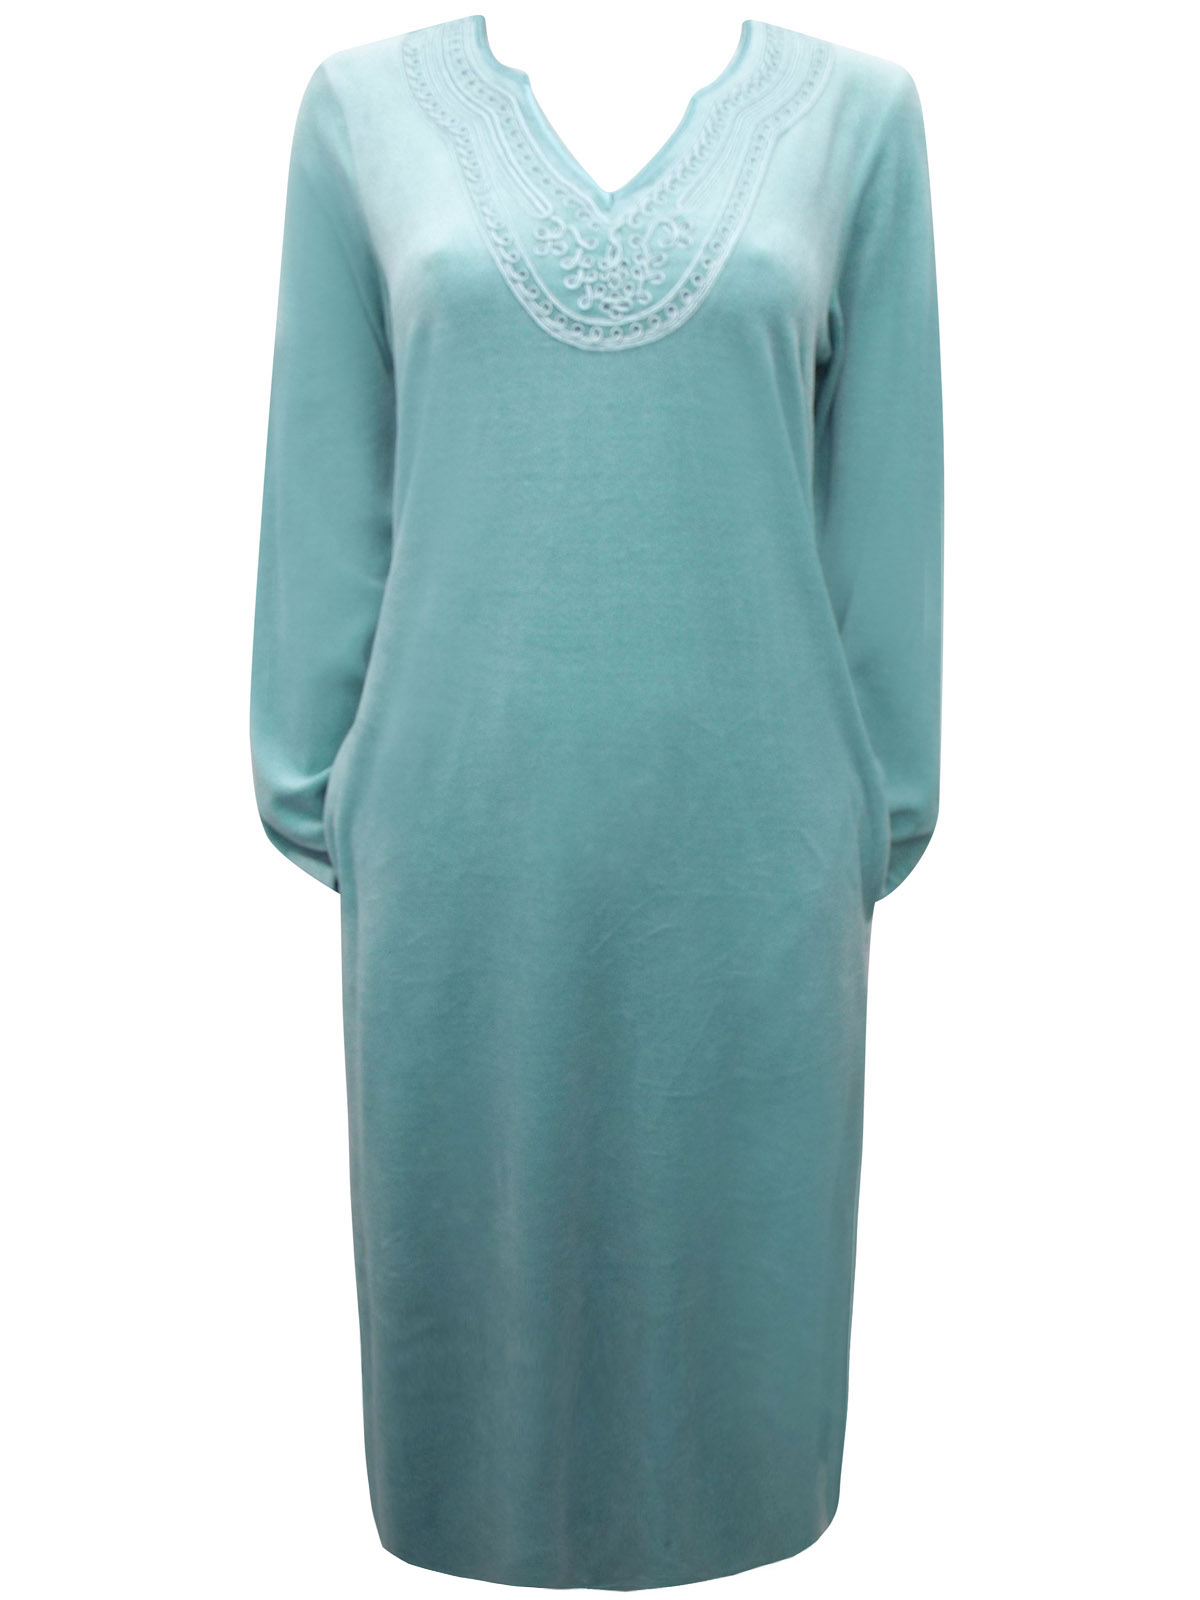 BHS - - BH5 MINT Celtic Appliqué Velour Nightdress - Size 8/10 to 20/22